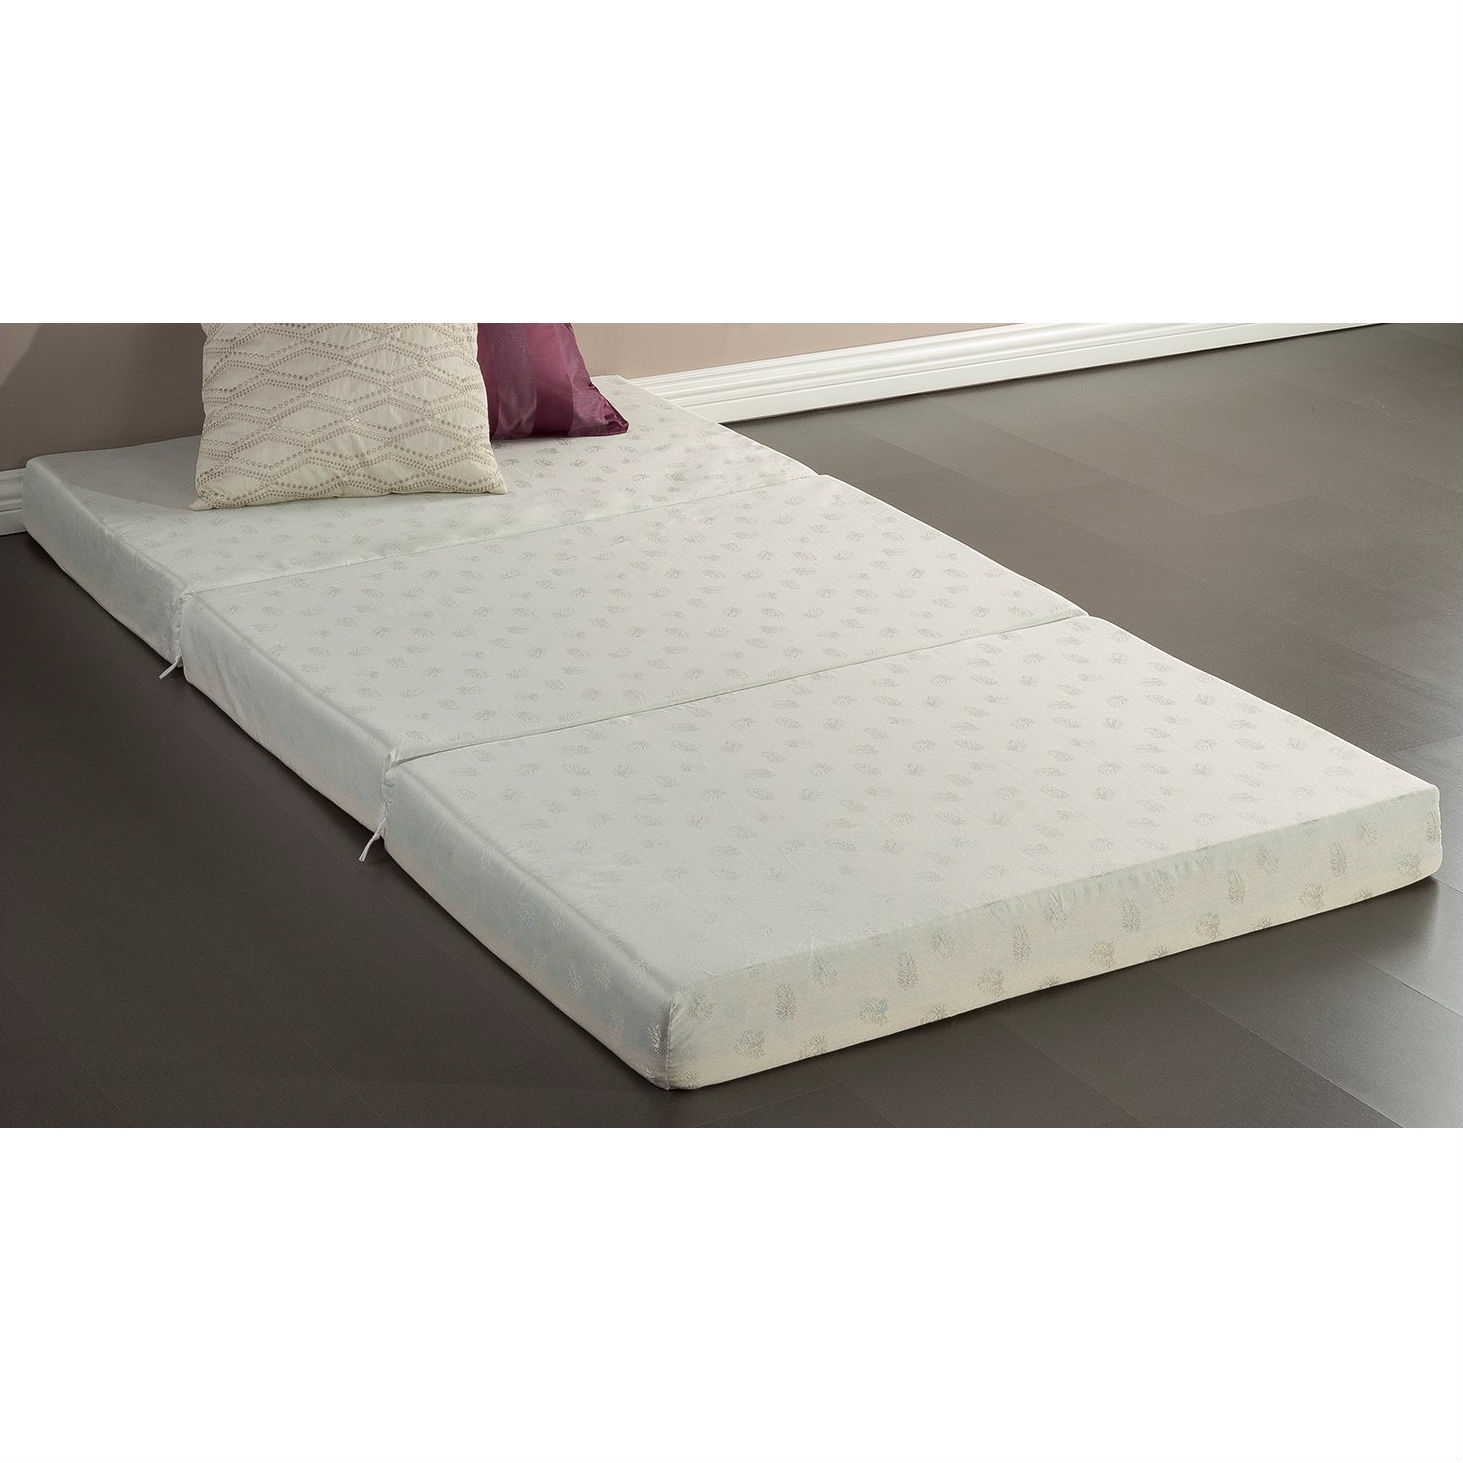 Twin Size 4 Inch Thick Memory Foam Guest Bed Mat Folding